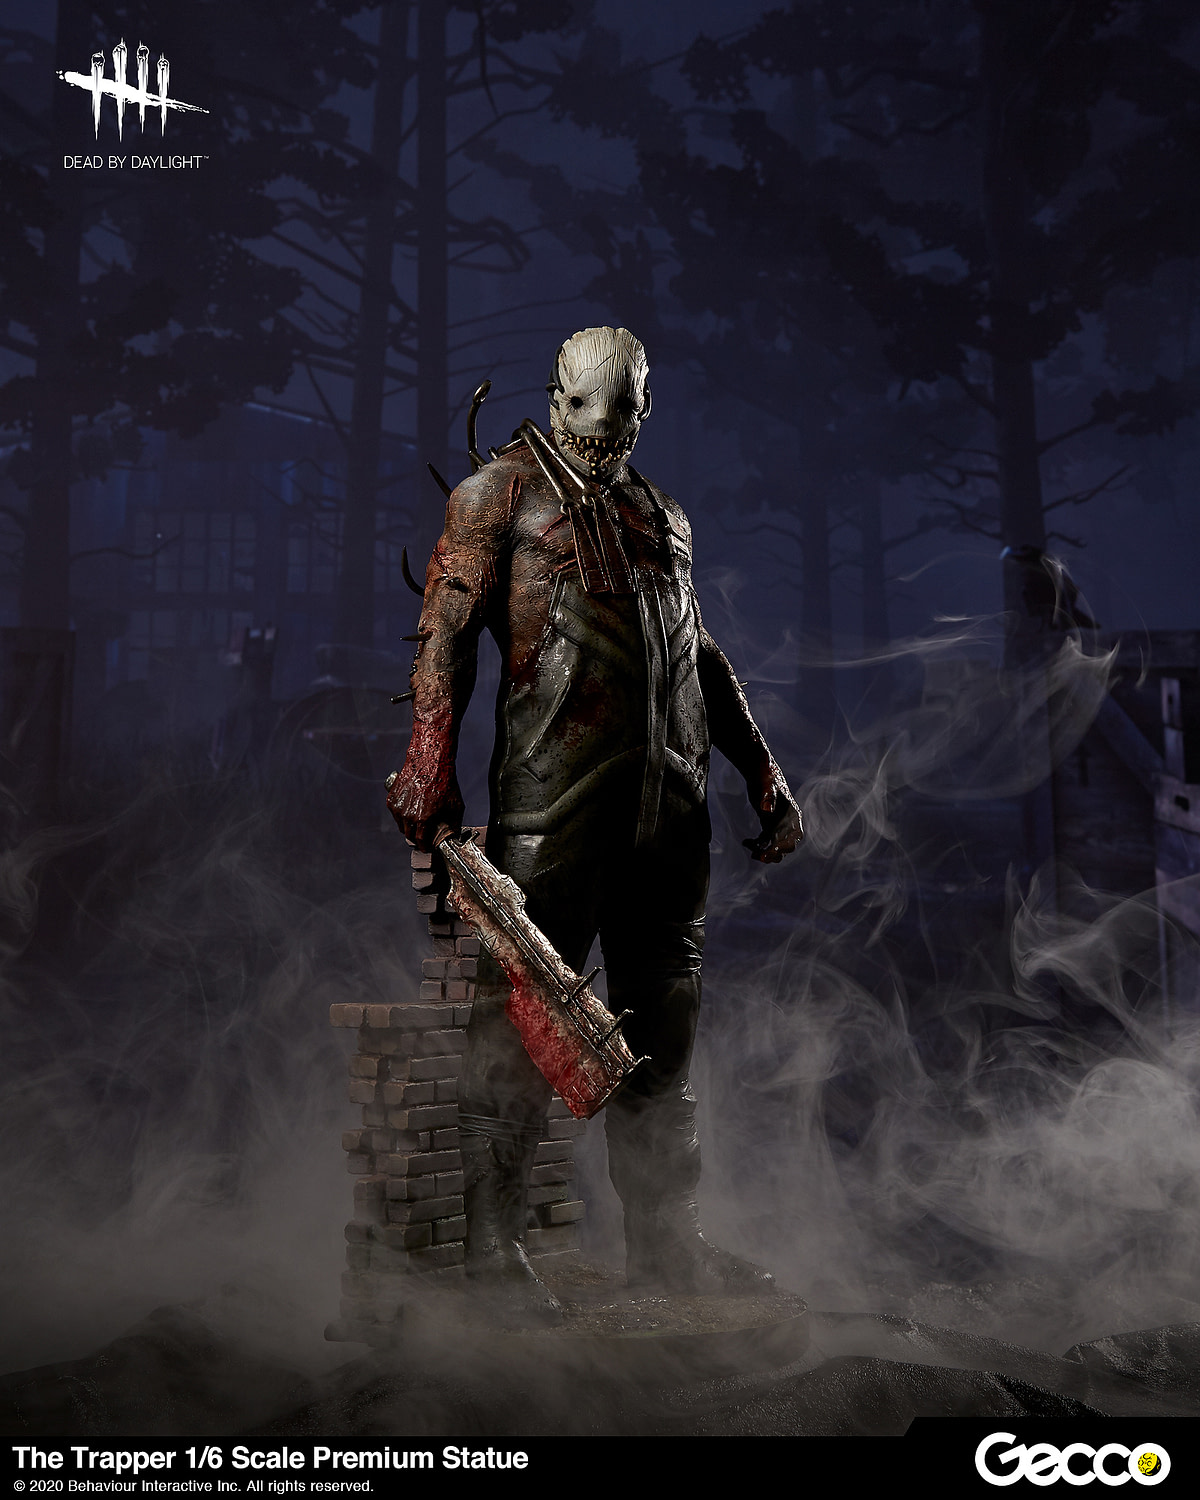 """""""Dead by Daylight"""" Sets A Trap With New Statue from Gecco"""